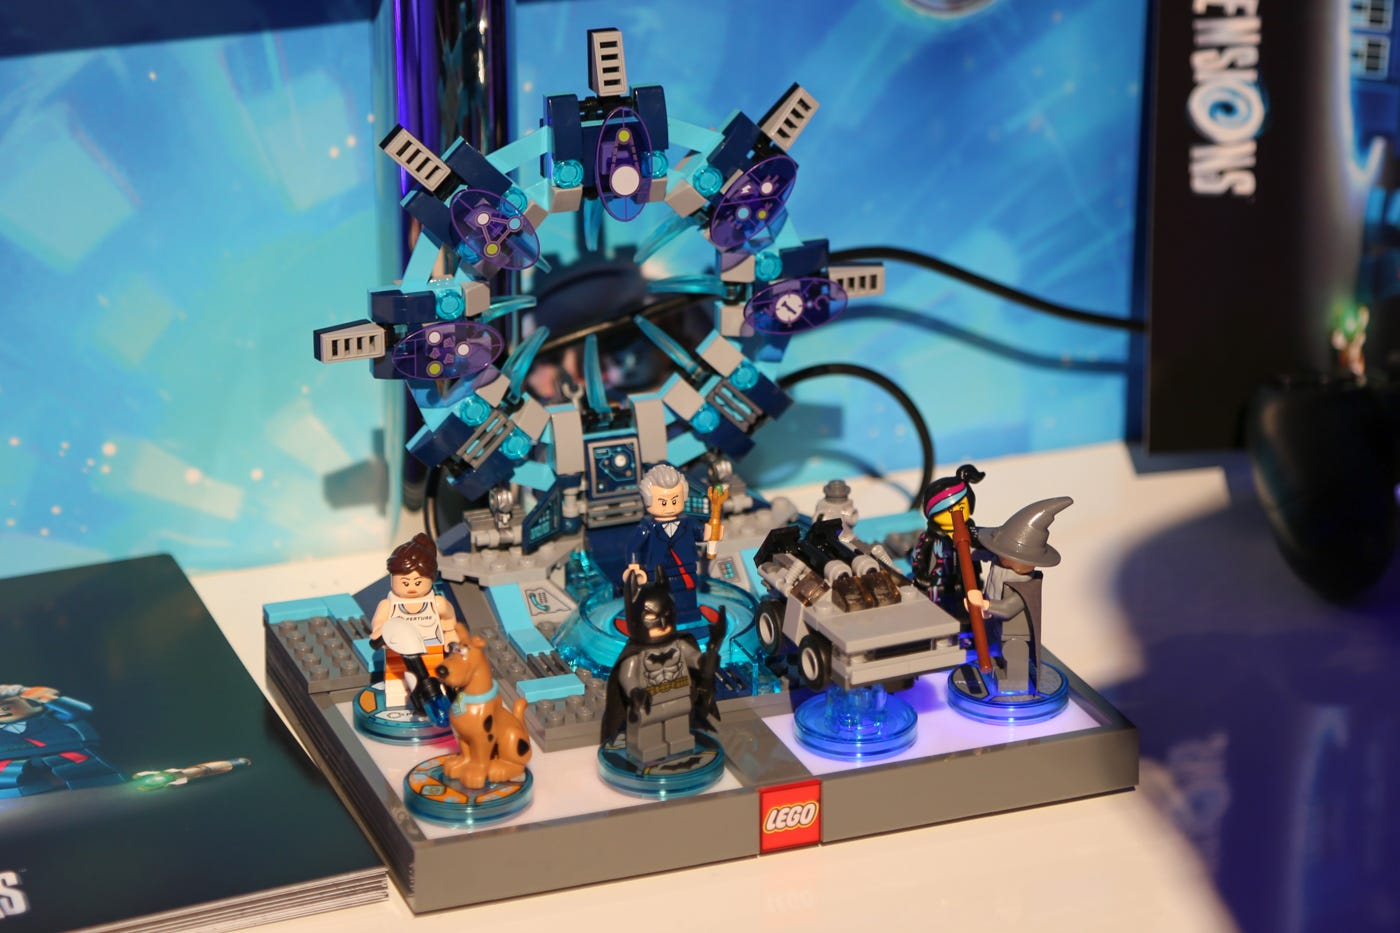 sonic lego dimensions building instructions